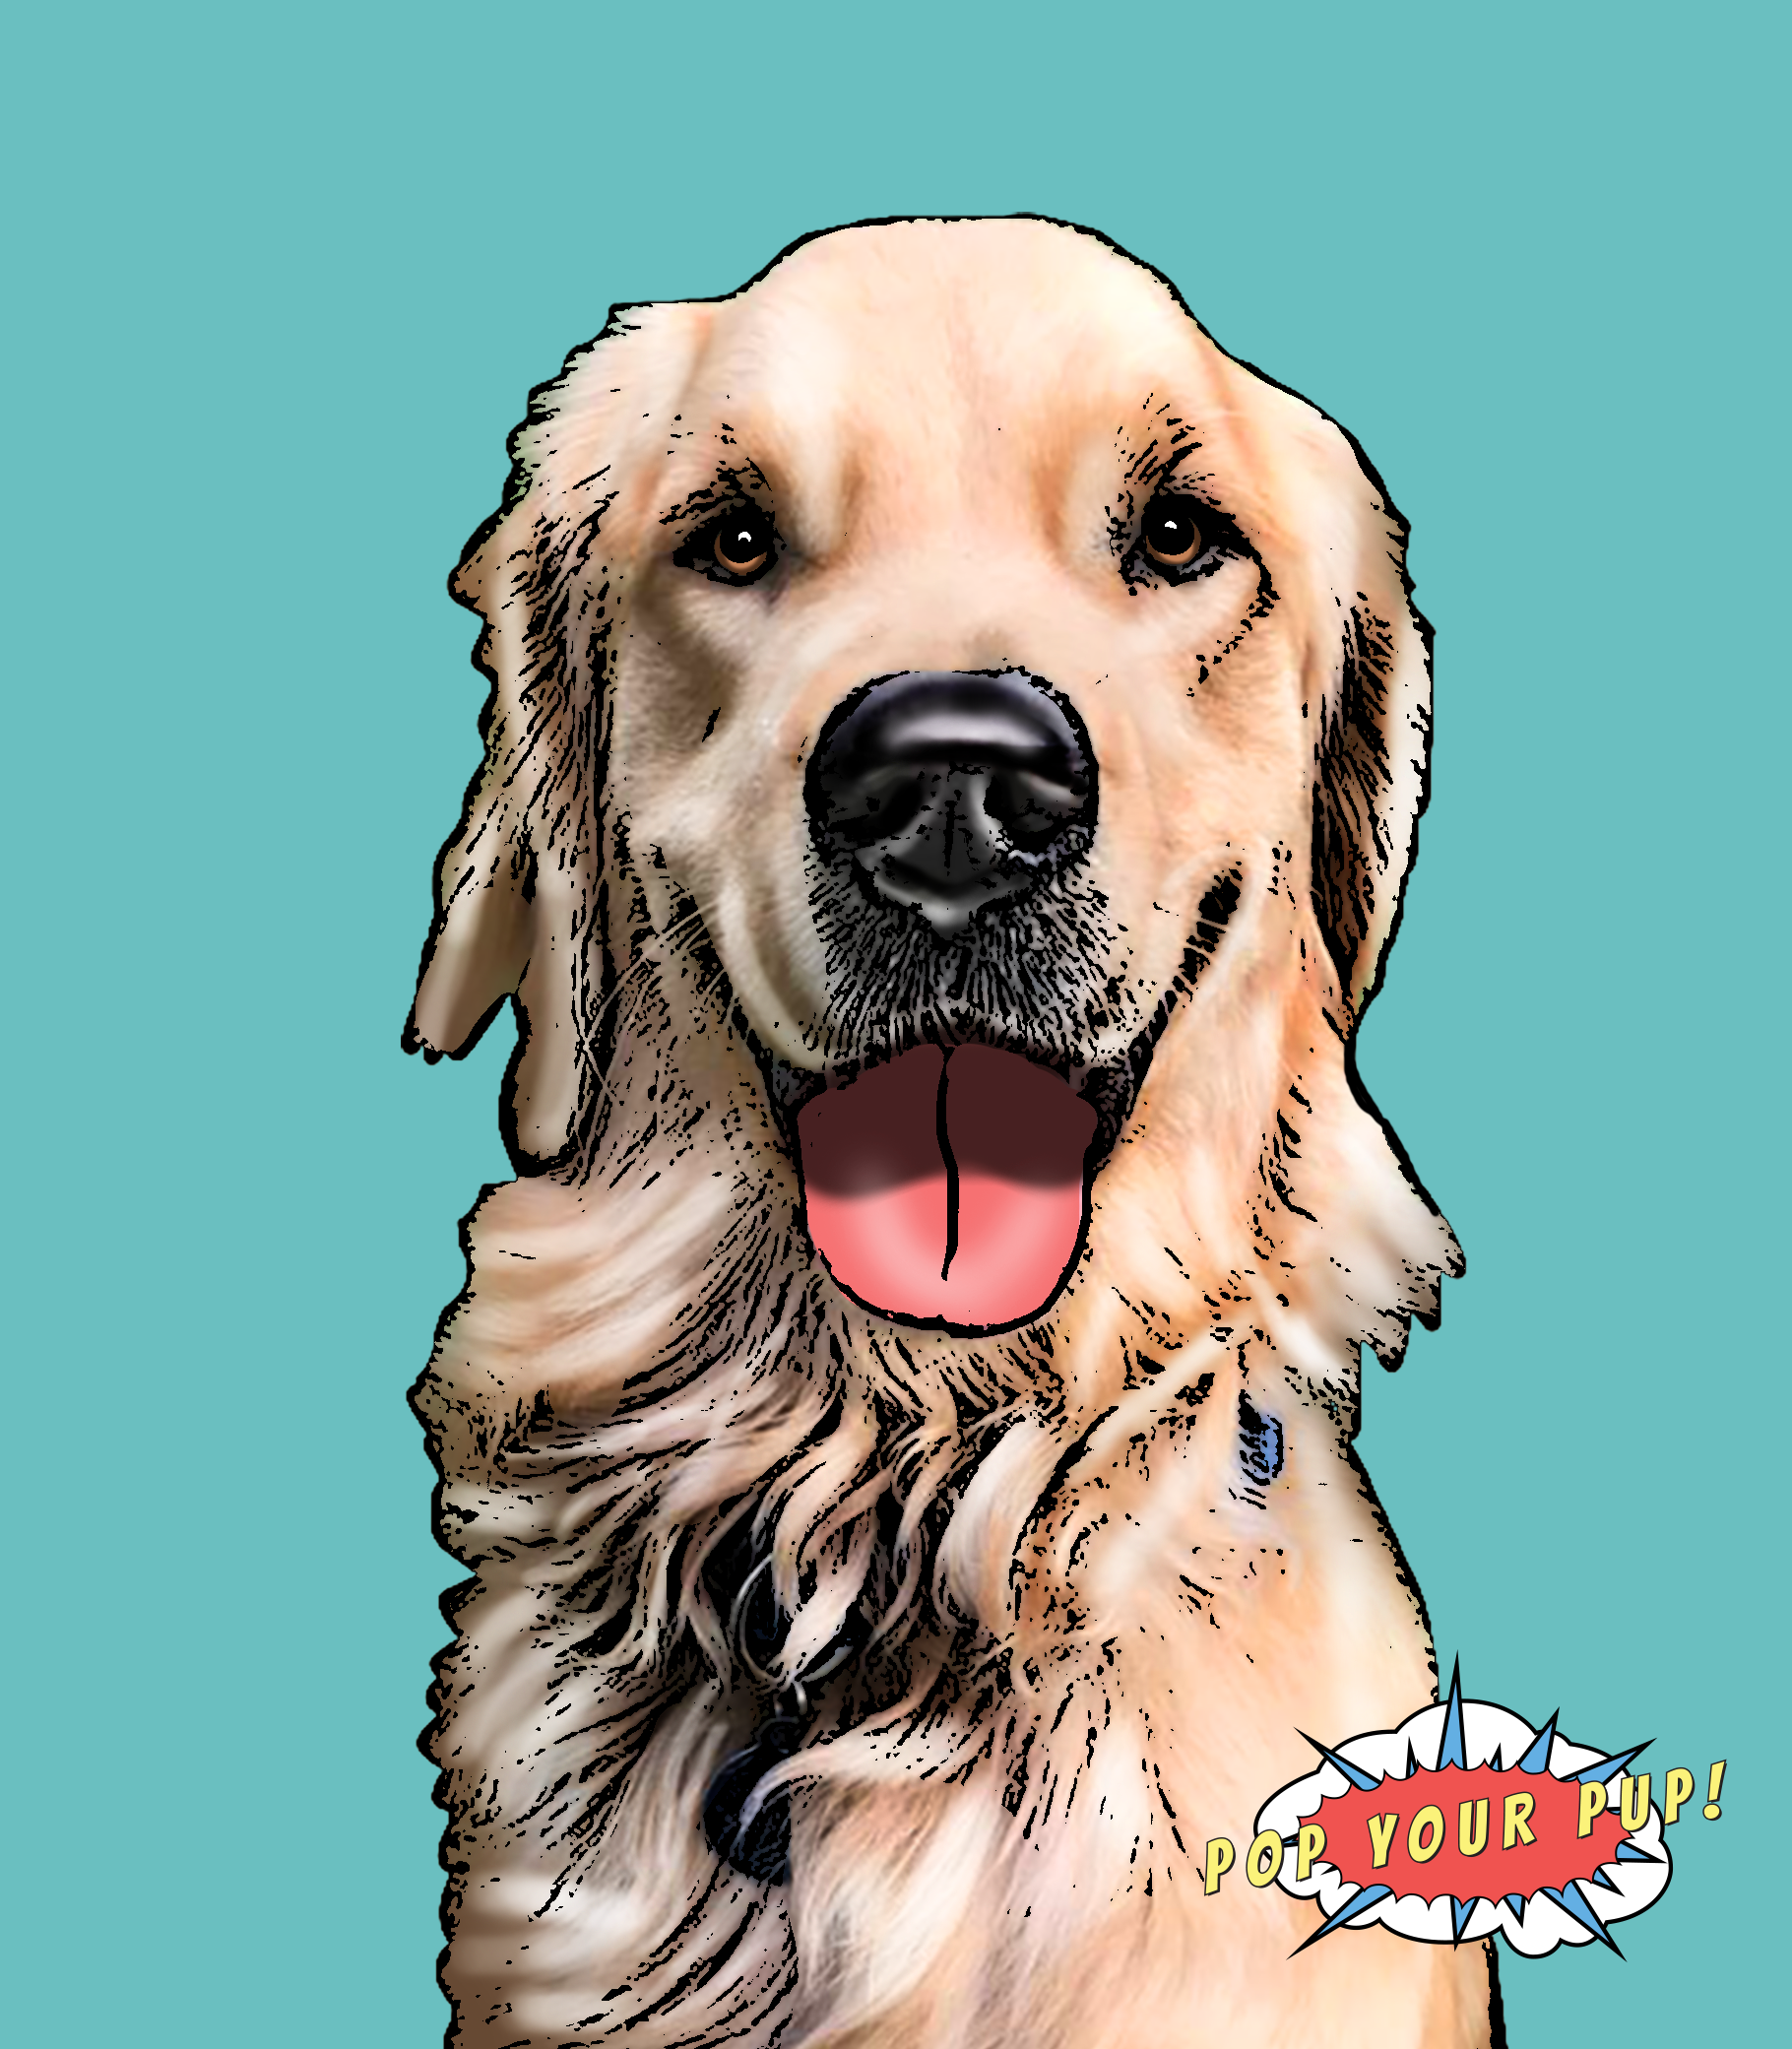 Pin by Pop Your Pup!™ on Gifts for Golden Retriever Lovers